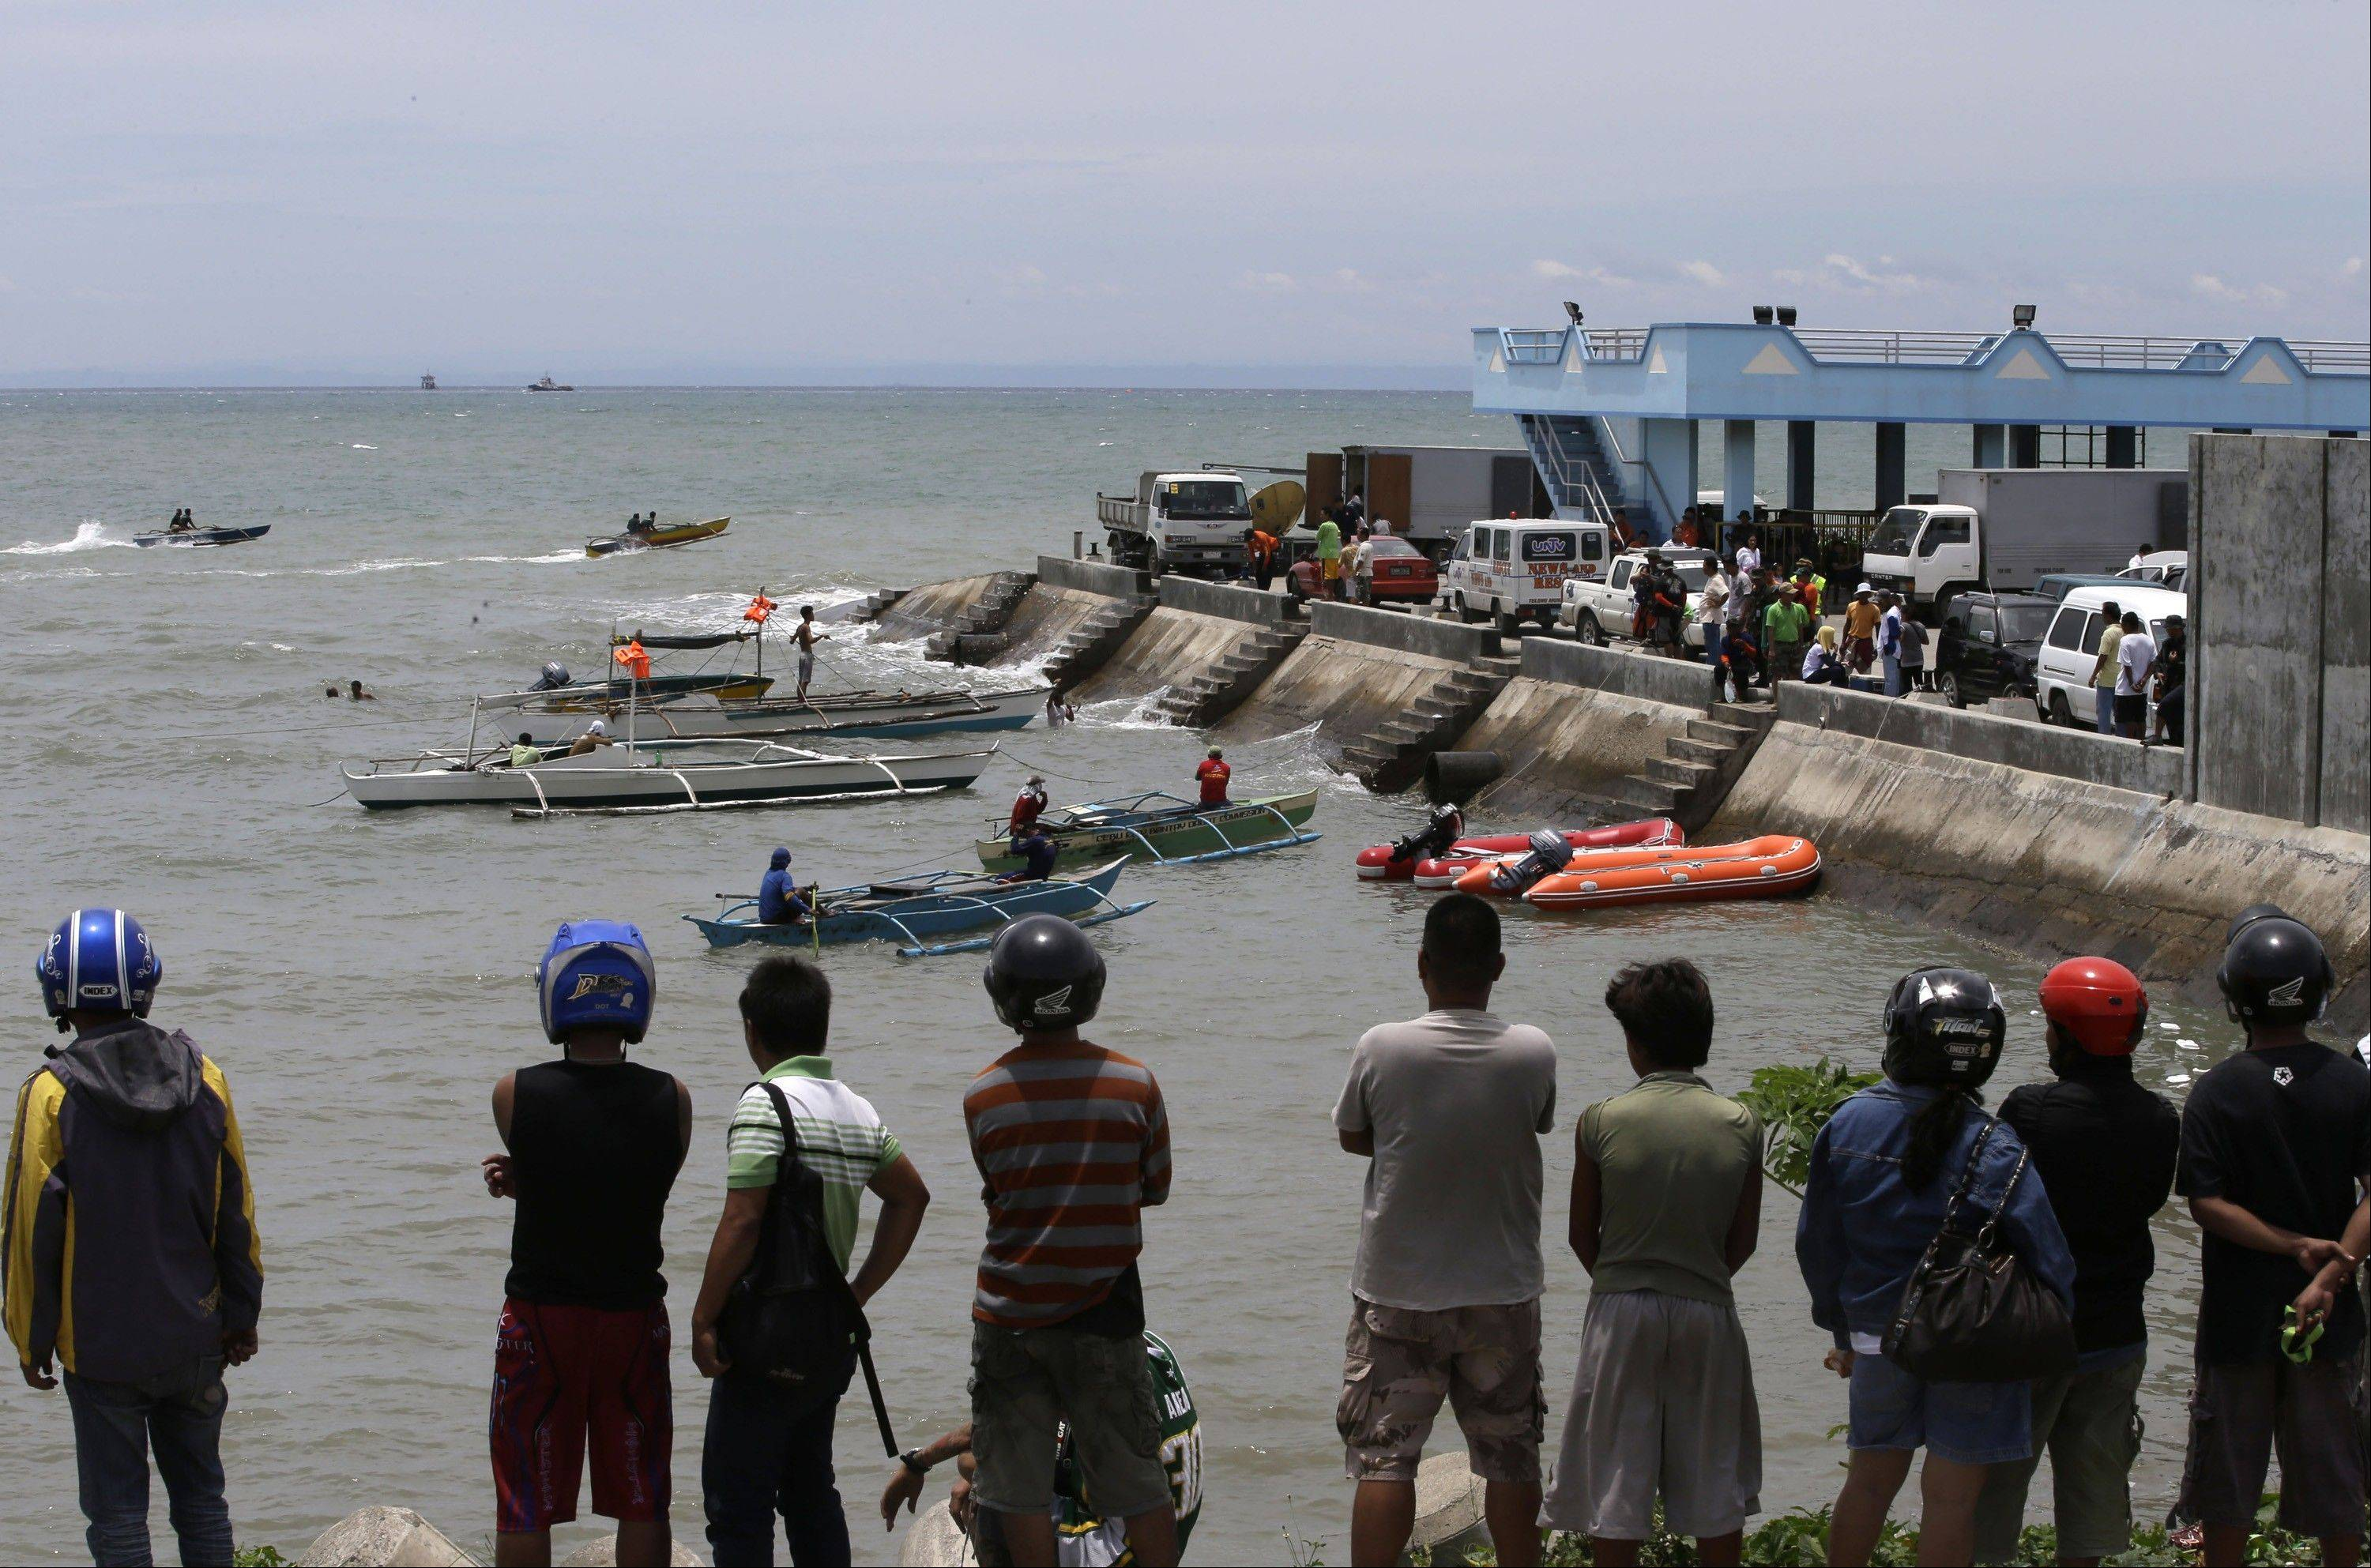 A crowd watches as divers continue their search and rescue operation off Talisay coast, Cebu province Sunday, Aug. 18, 2013 following Friday night's collision of the passenger ferry MV Thomas Aquinas and the cargo ship MV Sulpicio Express Siete in central Philippines.